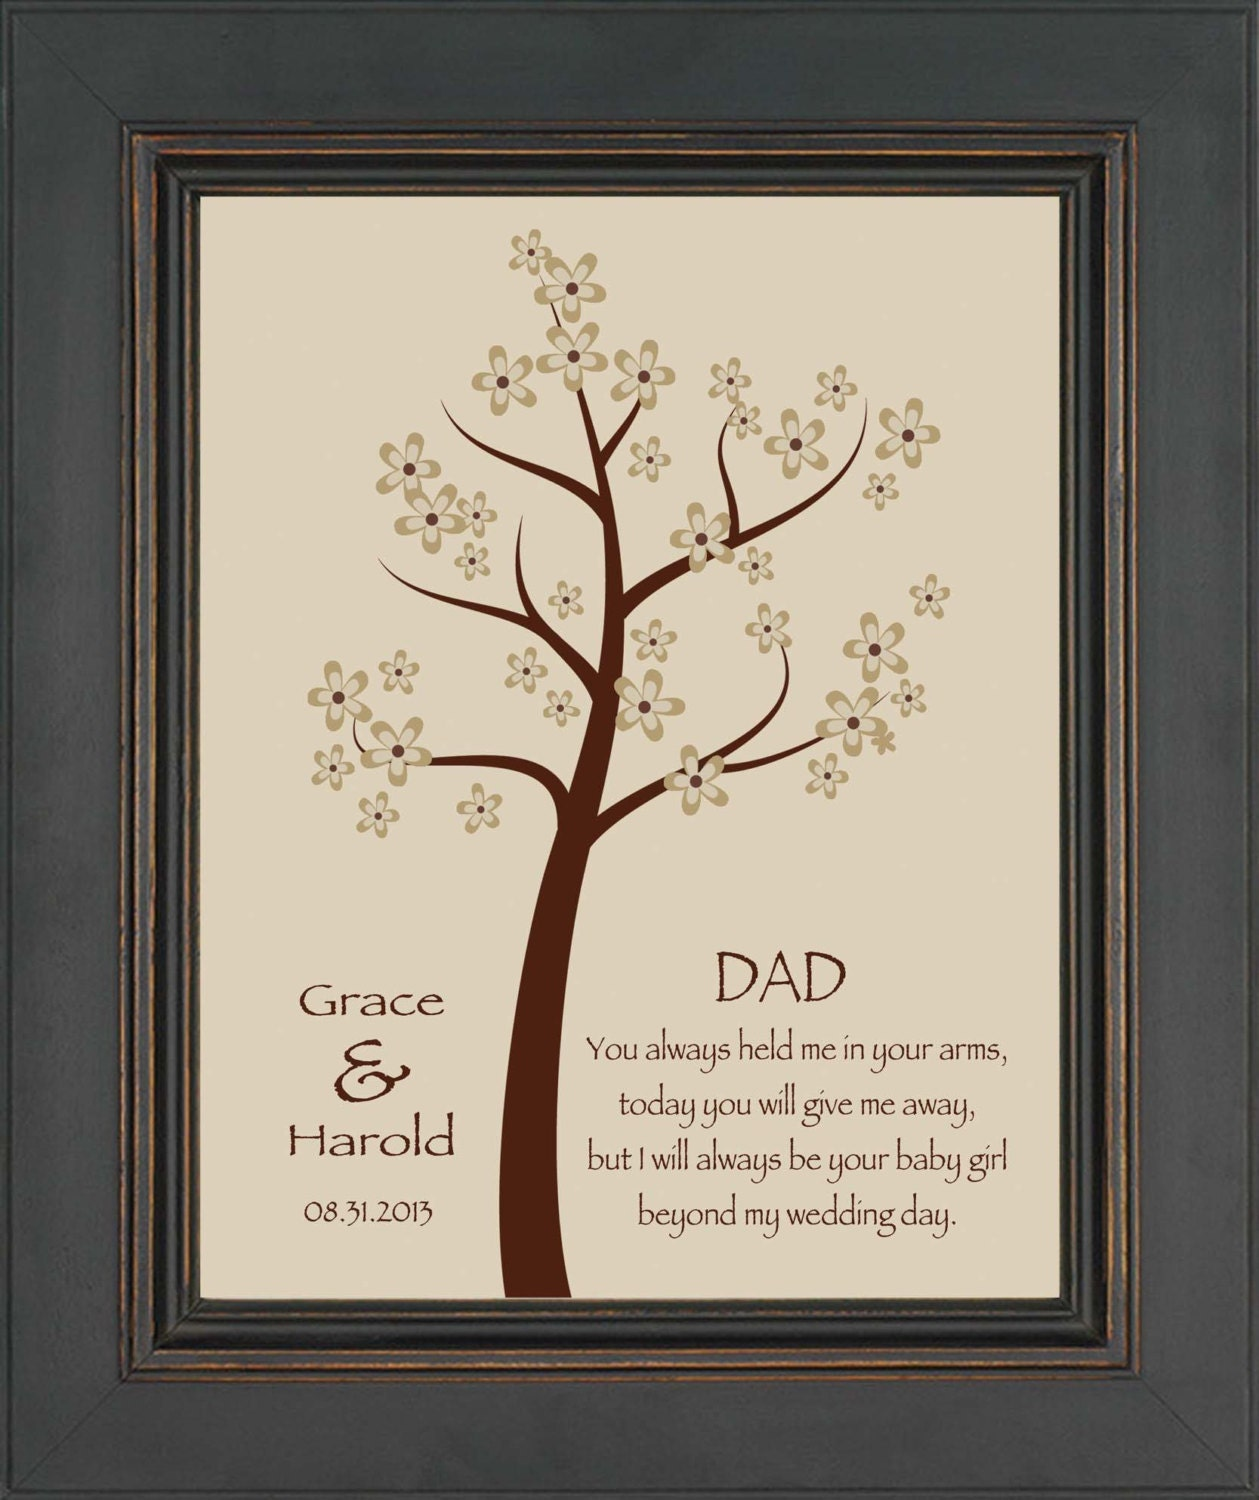 Unique Wedding Gift For Daughter : ... gift for DAD on Wedding Day from Daughter - Personalized Print- Can be